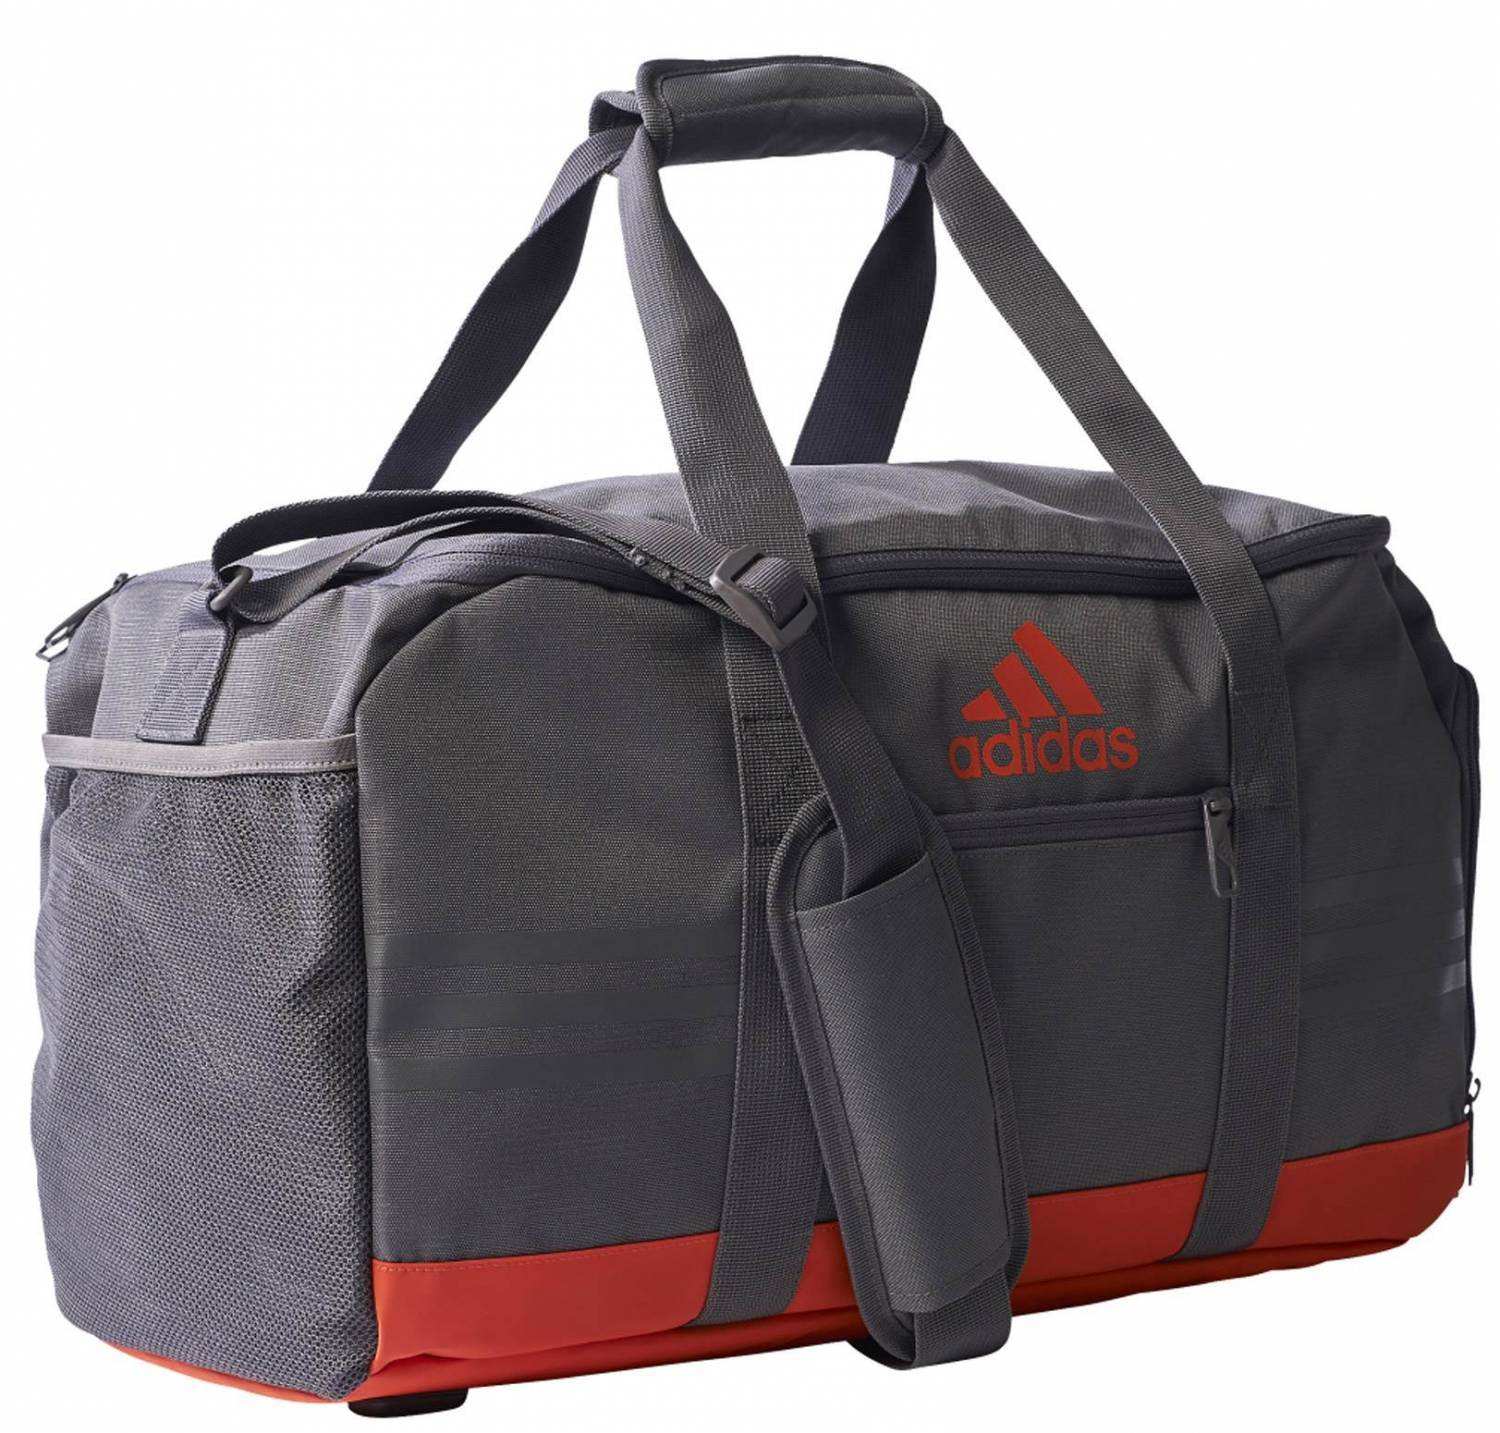 adidas-3stripes-performance-teambag-s-sporttasche-farbe-trace-grey-s17-trace-grey-s17-energy-s17-